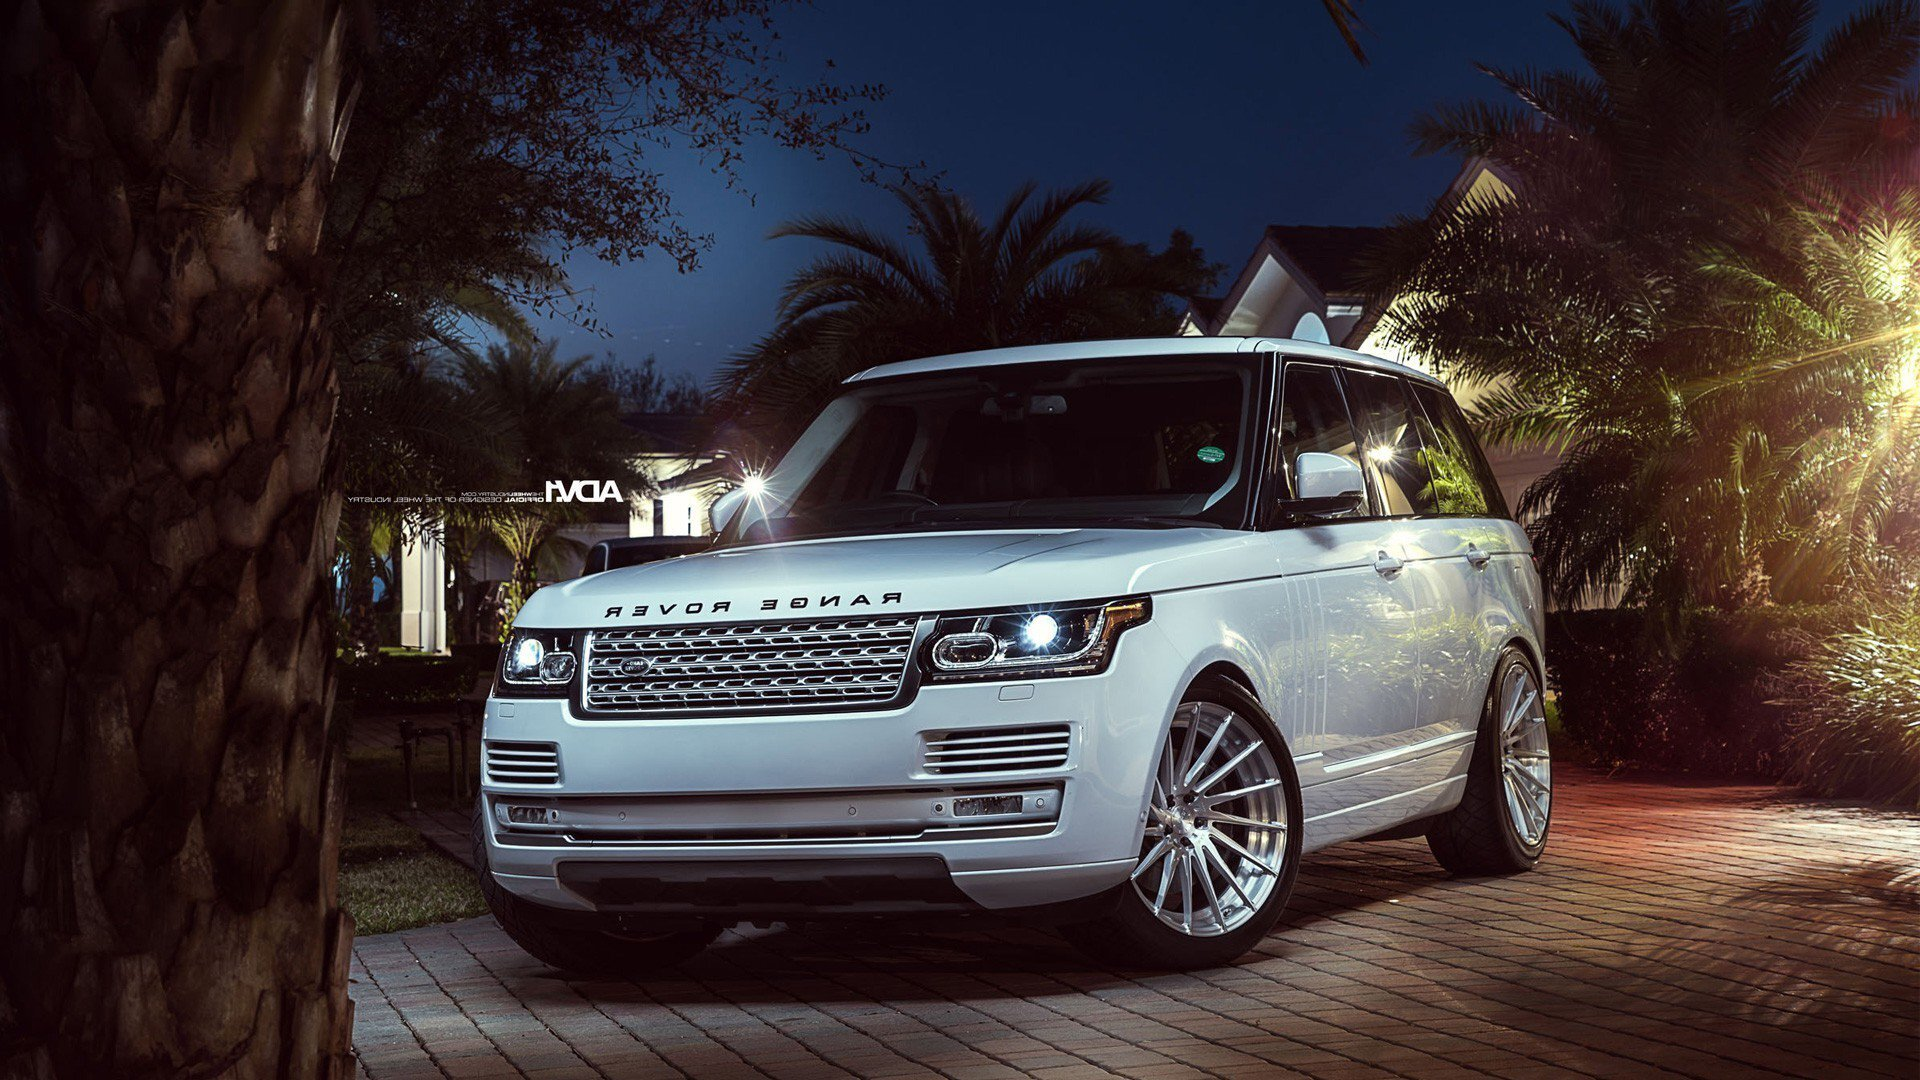 1920x1080 Range Rover Laptop Full Hd 1080p Hd 4k Wallpapers Images